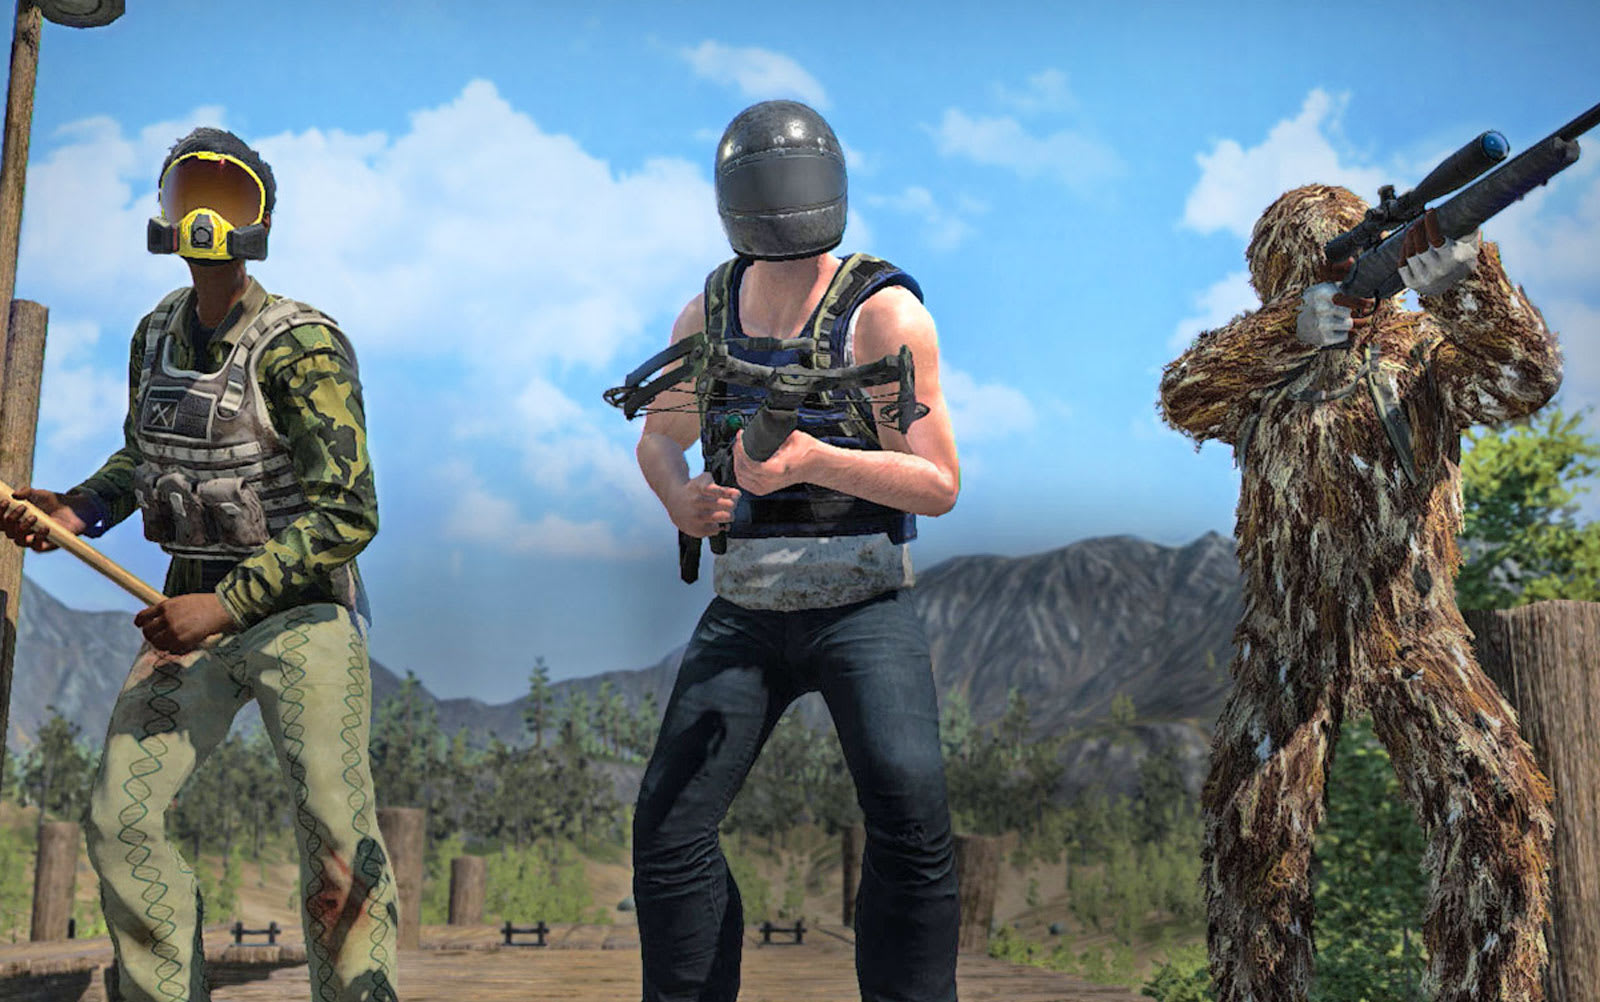 The original 'H1Z1' survival game shuts down October 24th